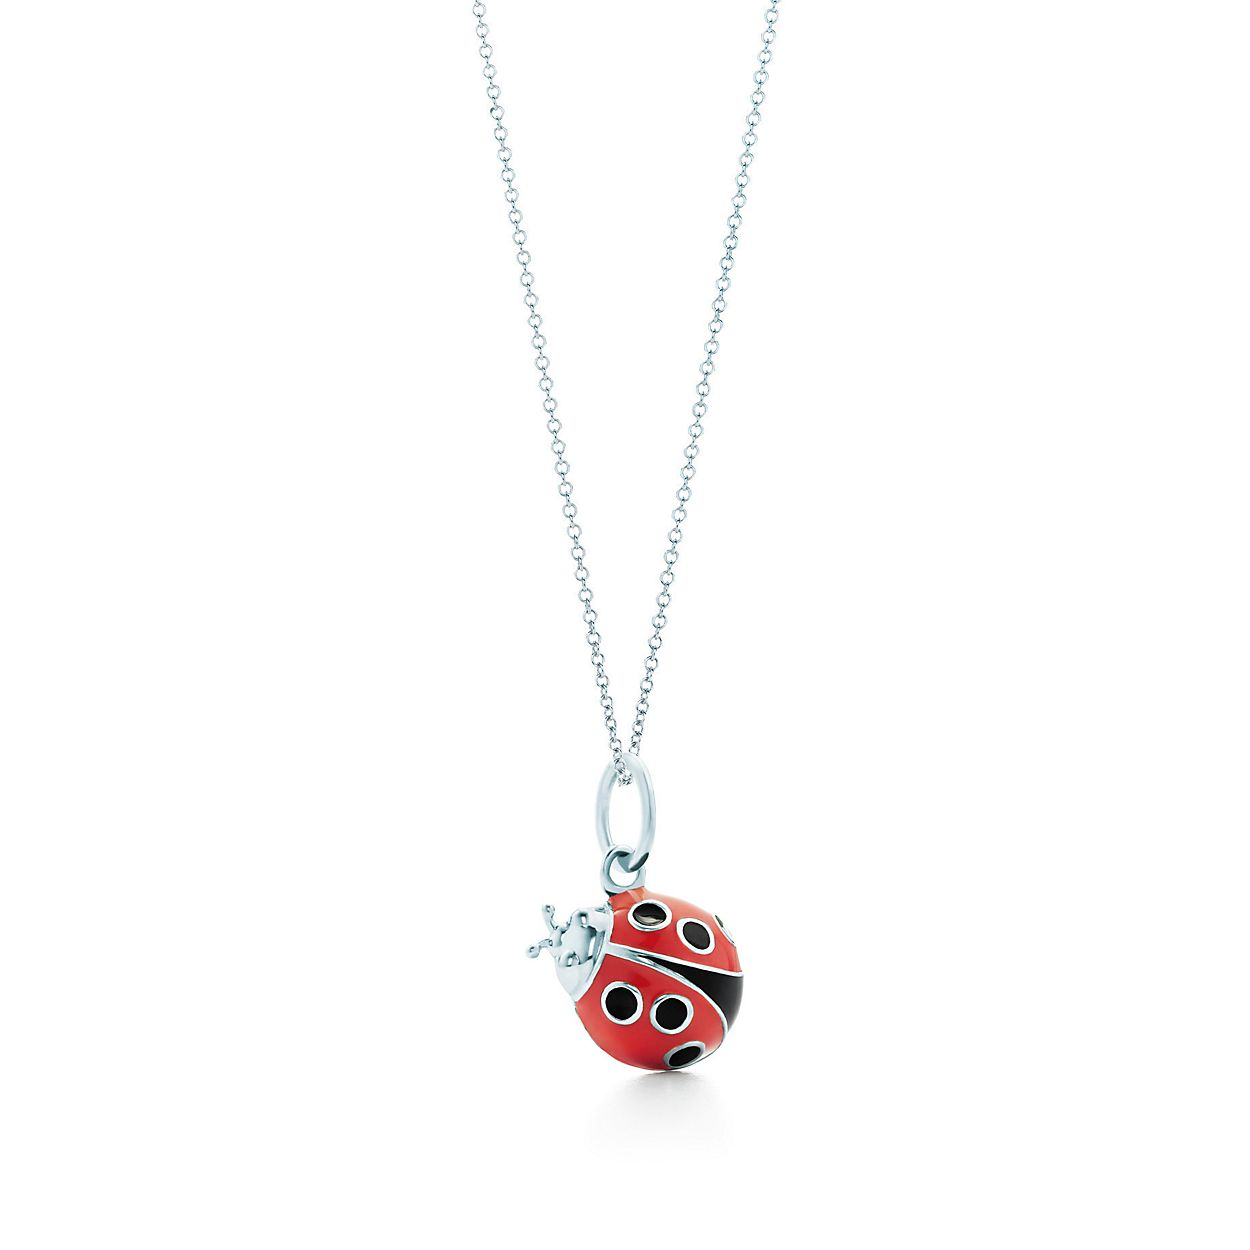 Ladybug charm in sterling silver with blue and black enamel finish, small Tiffany & Co.